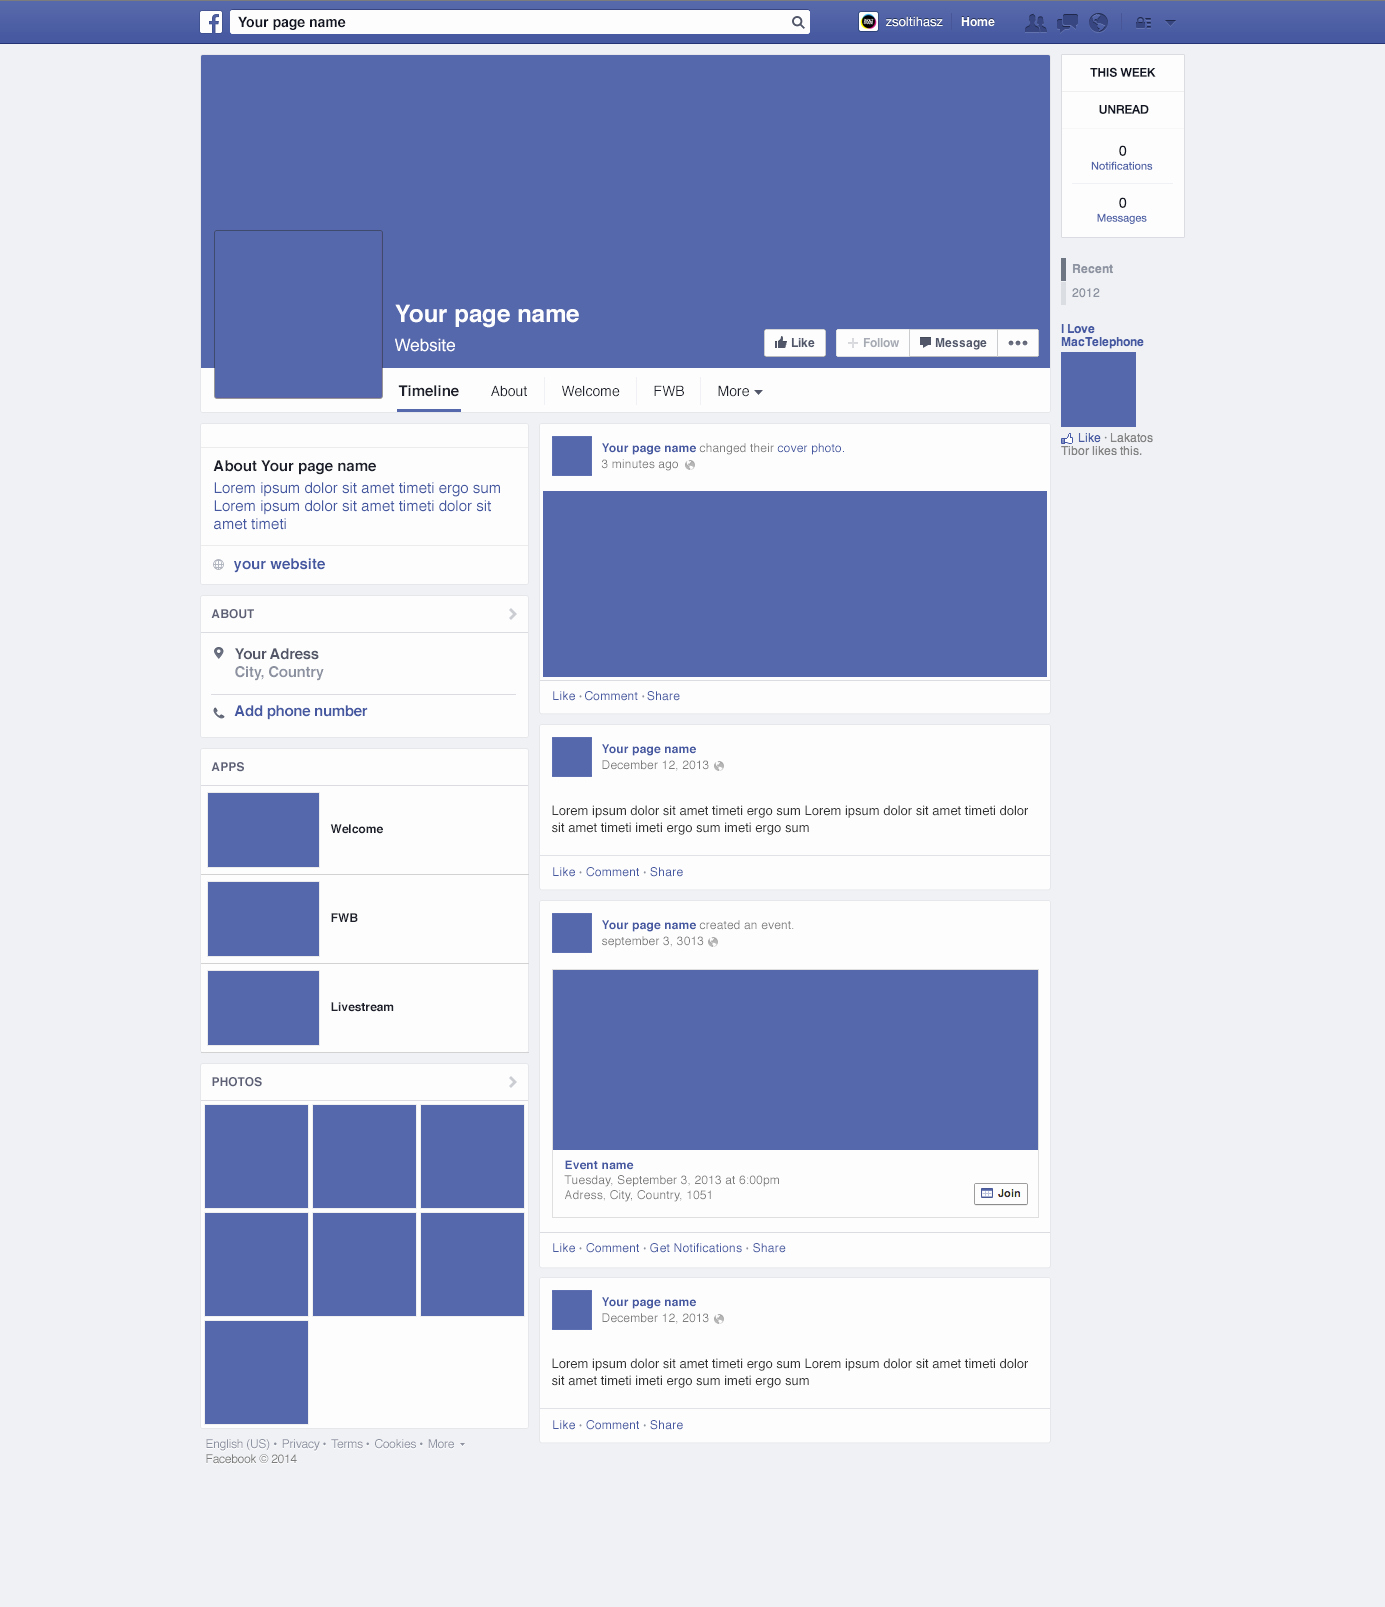 Facebook Page Design Template Inspirational Page Design Mockup